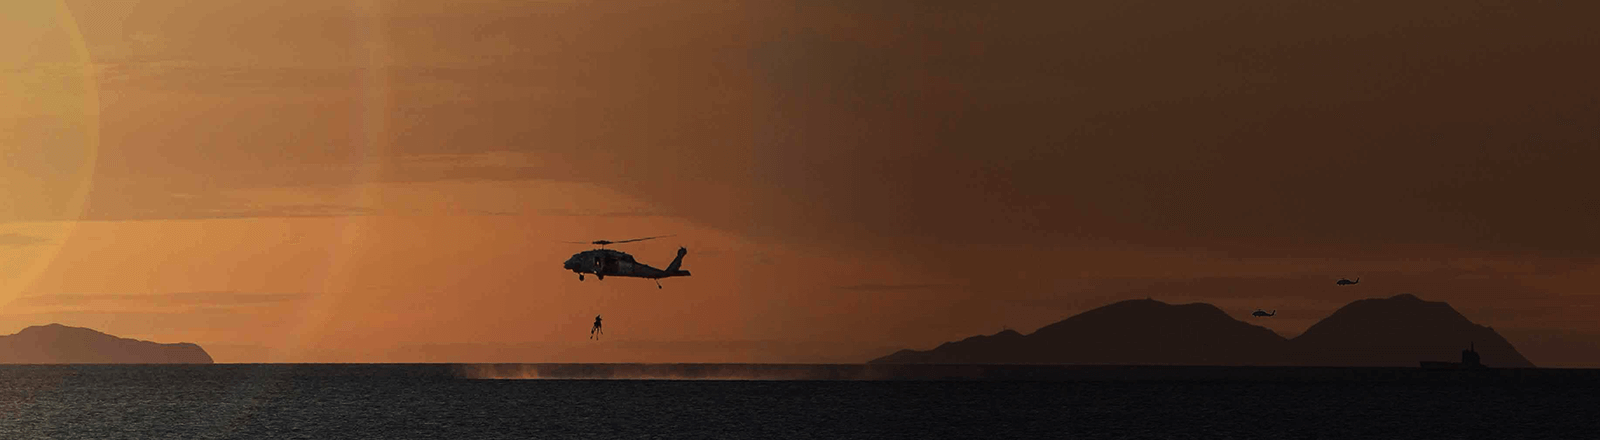 Photos of helicopters over water